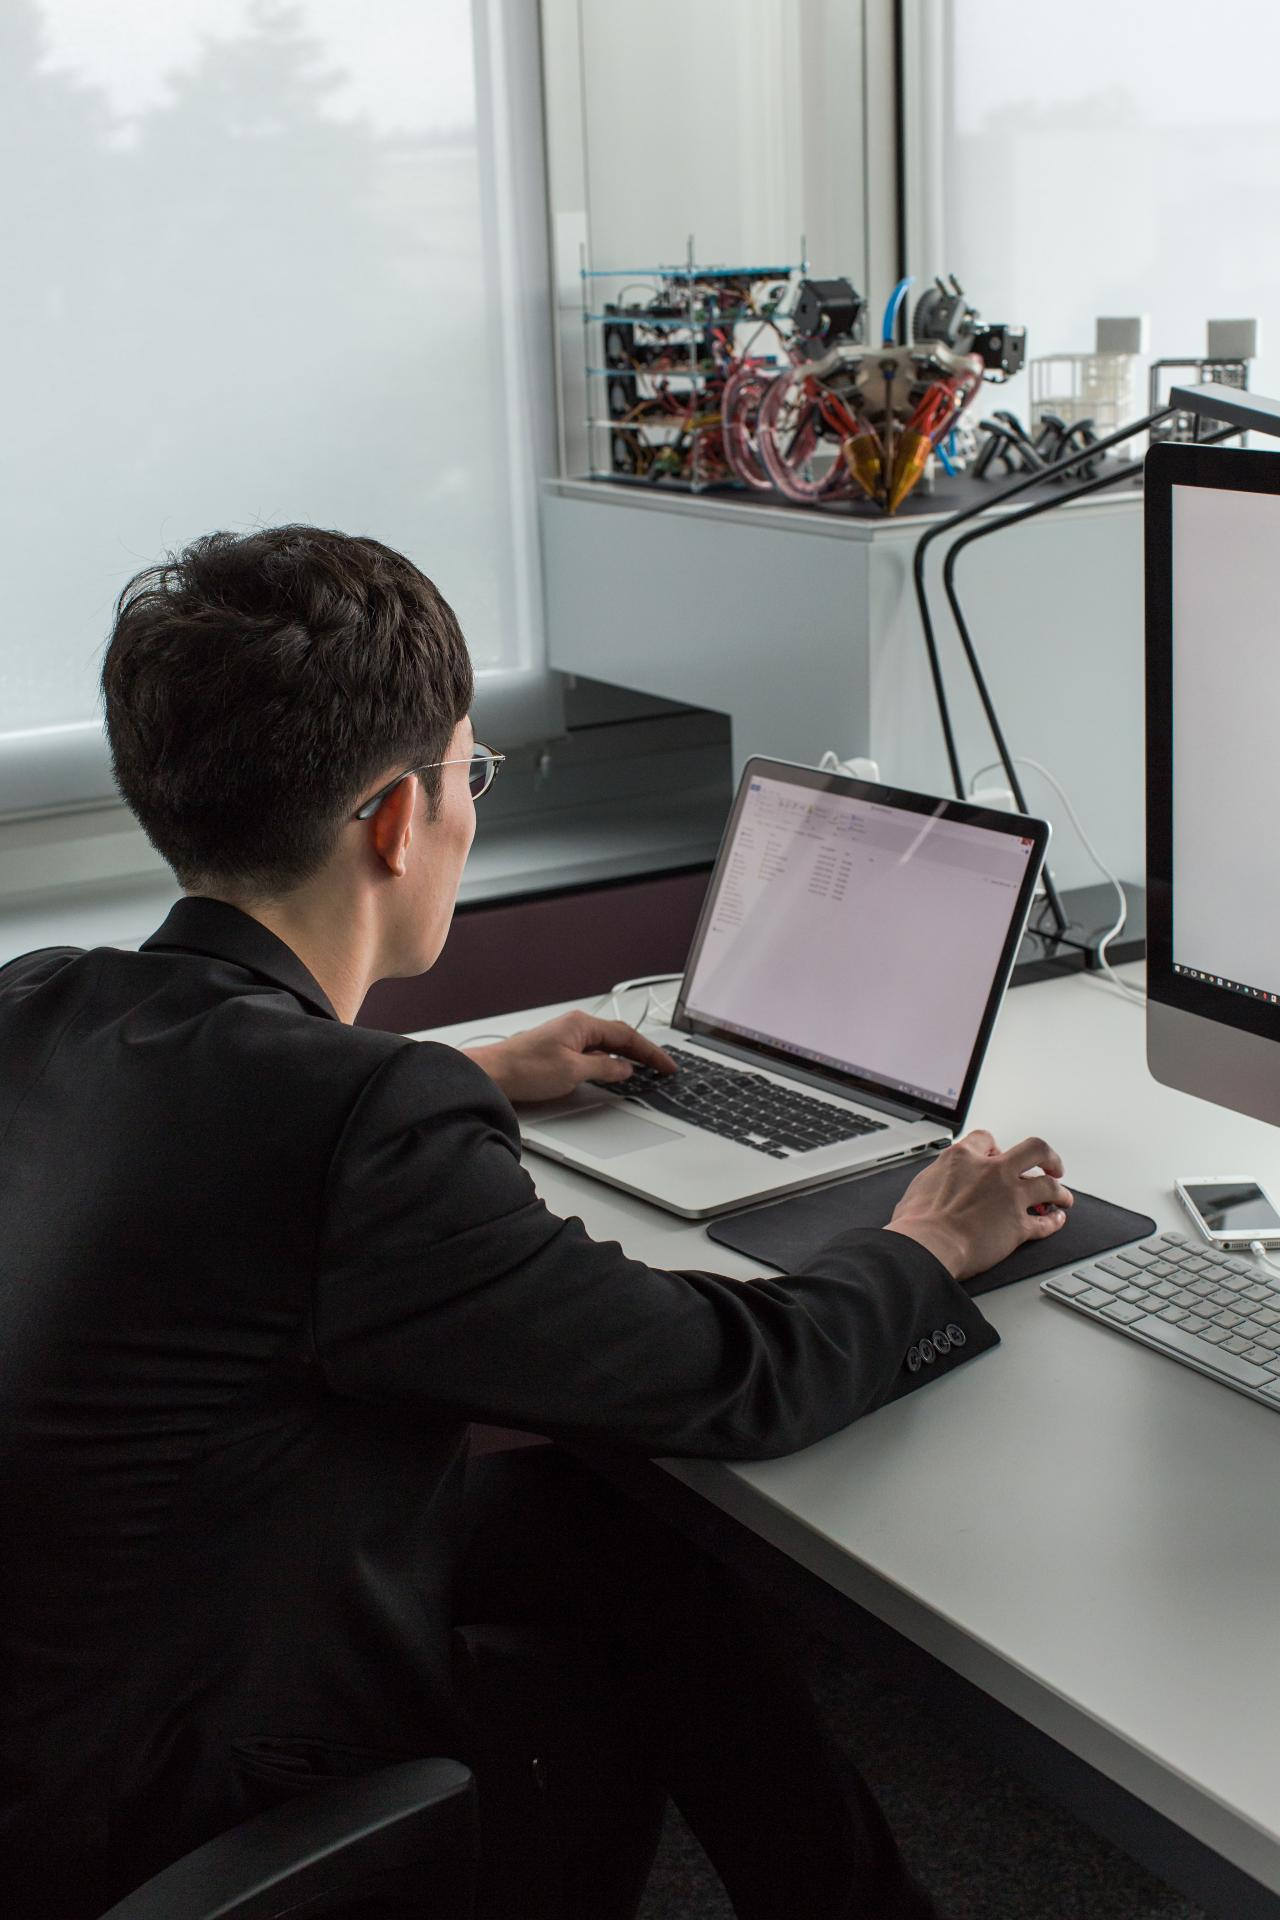 man infront of computer